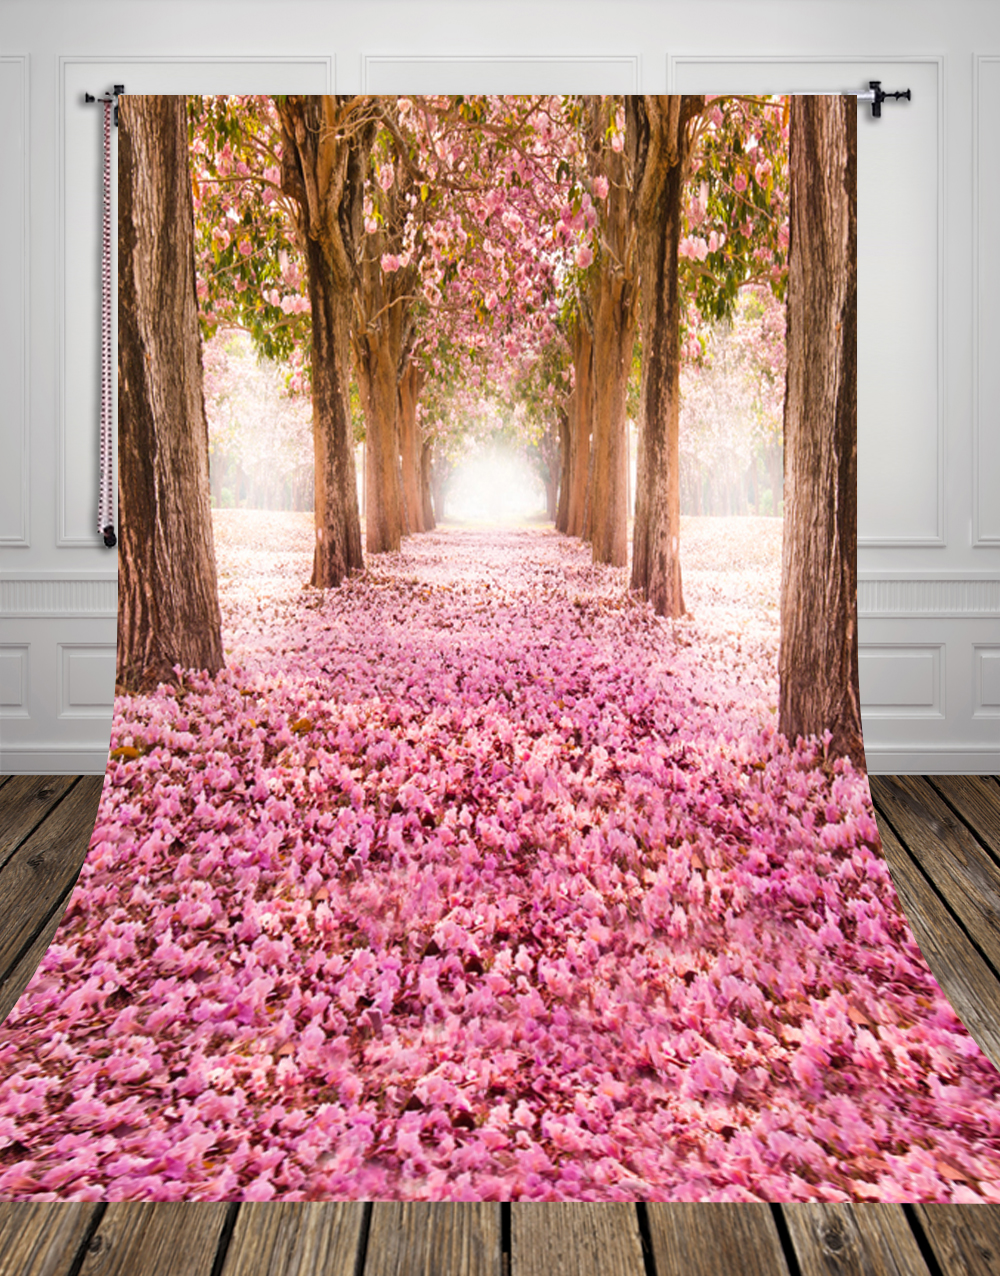 Pink Boulevard printed newborn birthday photo backdrops Art fabric backdrop for studio children photography backgrounds D 9779 in Background from Consumer Electronics